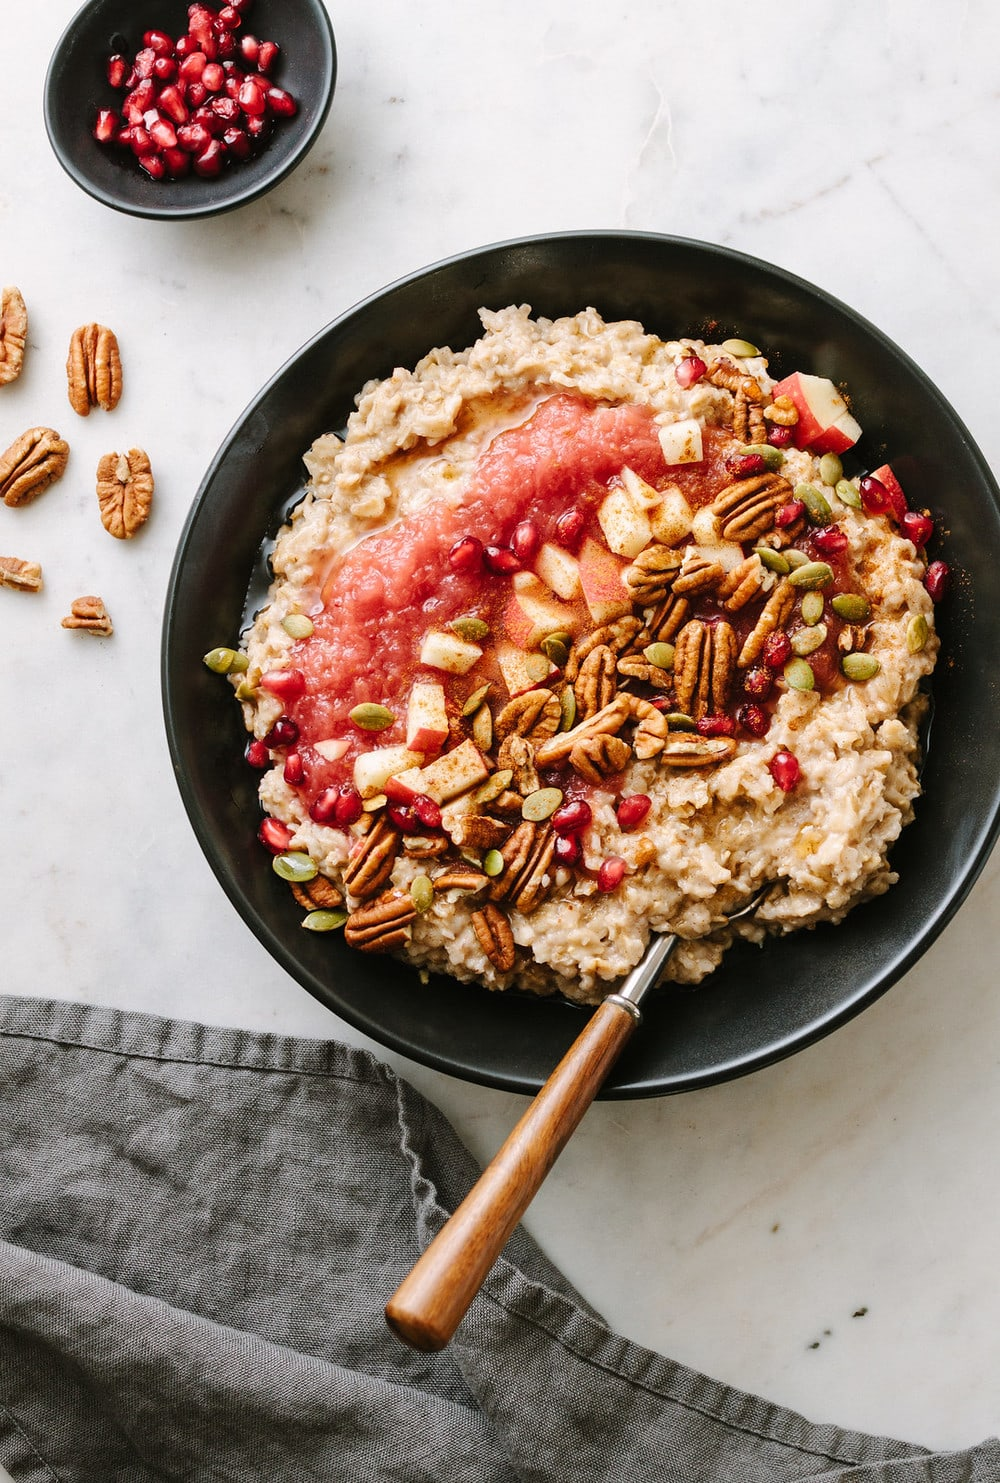 Healthy Bowl Of Cinnamon Oatmeal - The